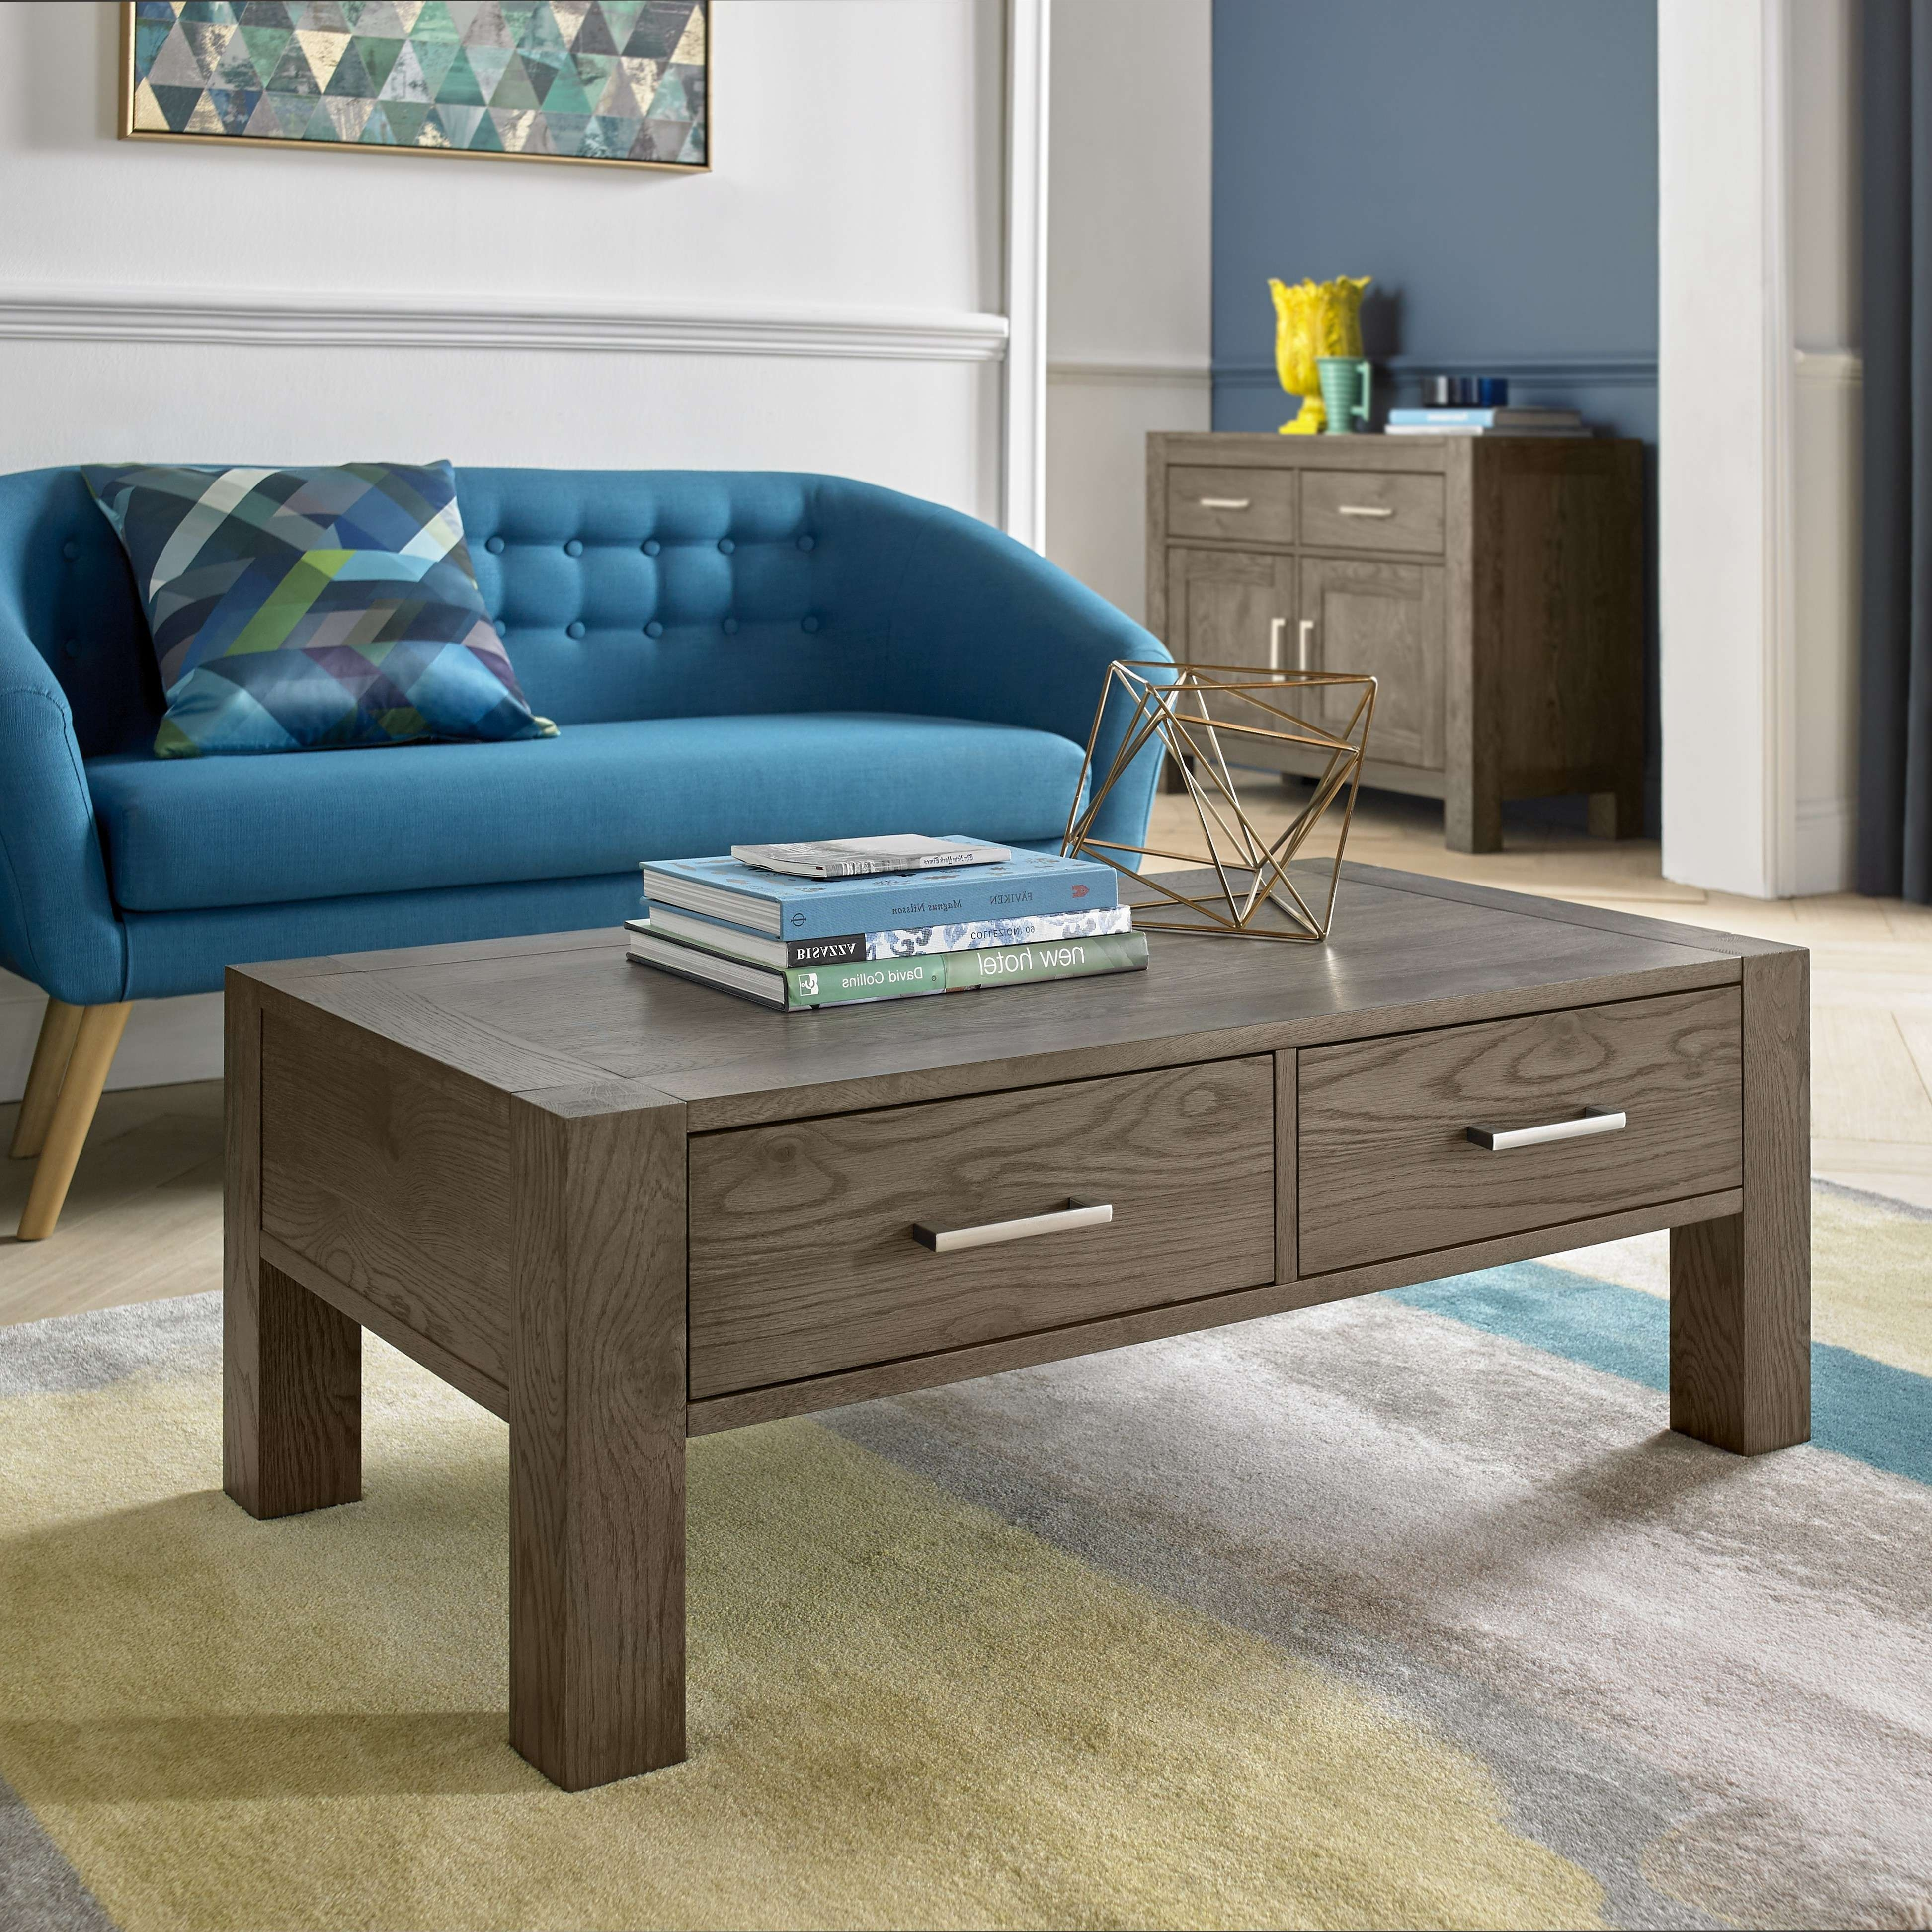 Bentley Designs Turin Dark Oak Coffee Table With Drawers – Style Throughout Most Up To Date Dark Oak Coffee Tables (View 4 of 20)